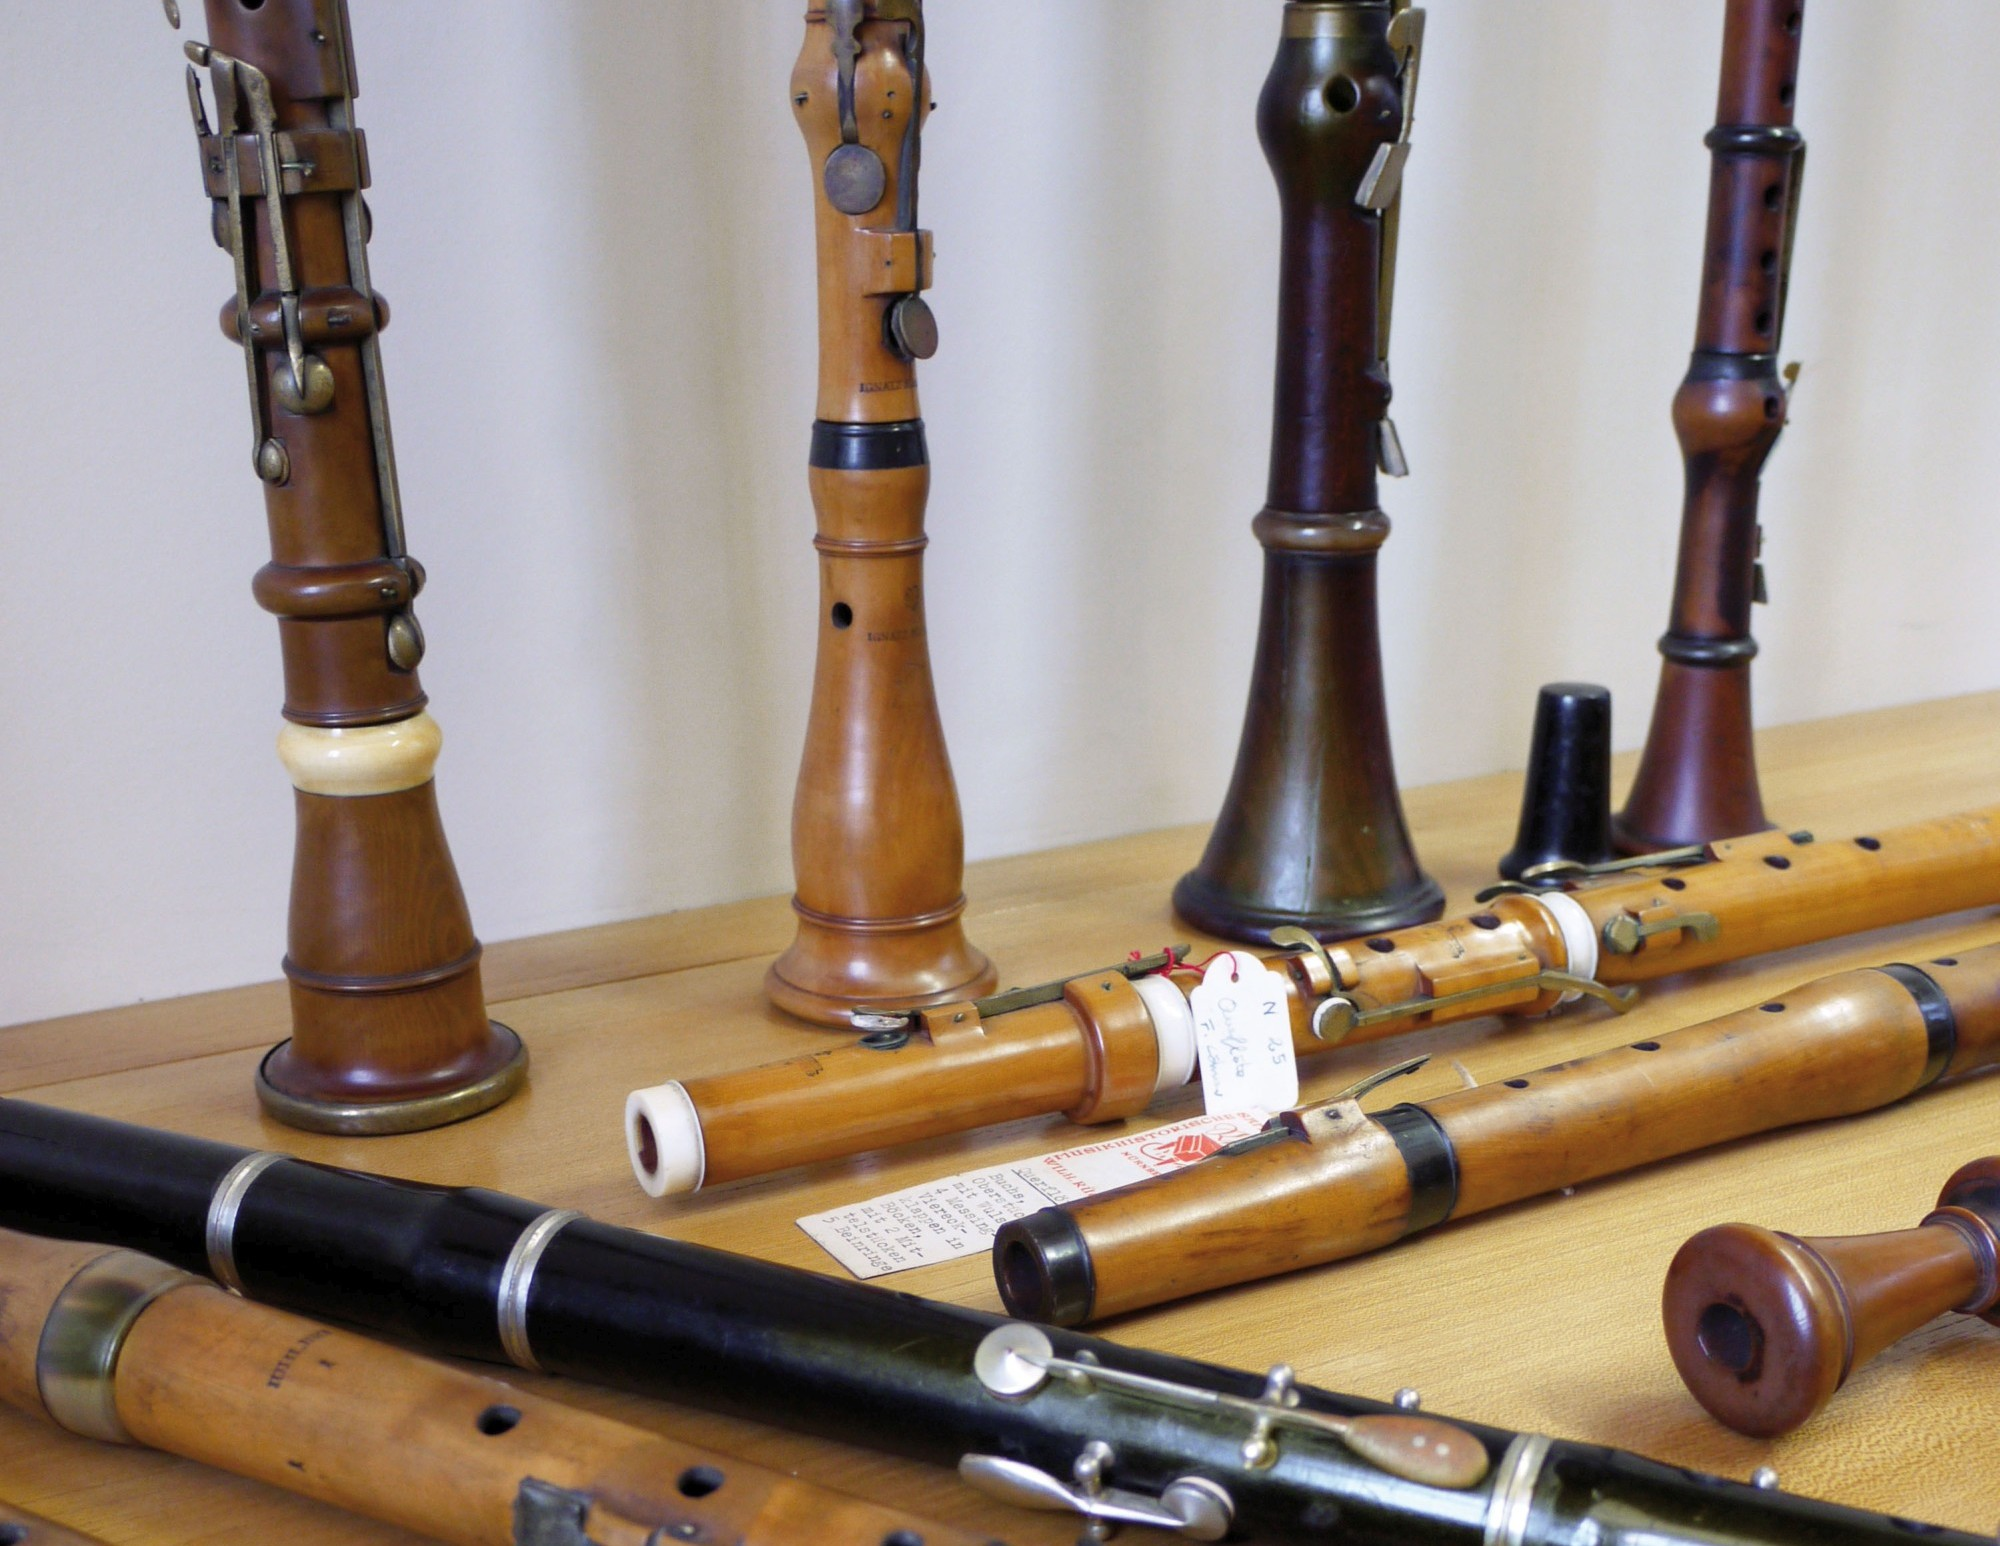 Baroque flutes, oboes and clarinets donated to the collection by Reinhold Neupert and Ulrich Rück (Image: Isi Kunath)